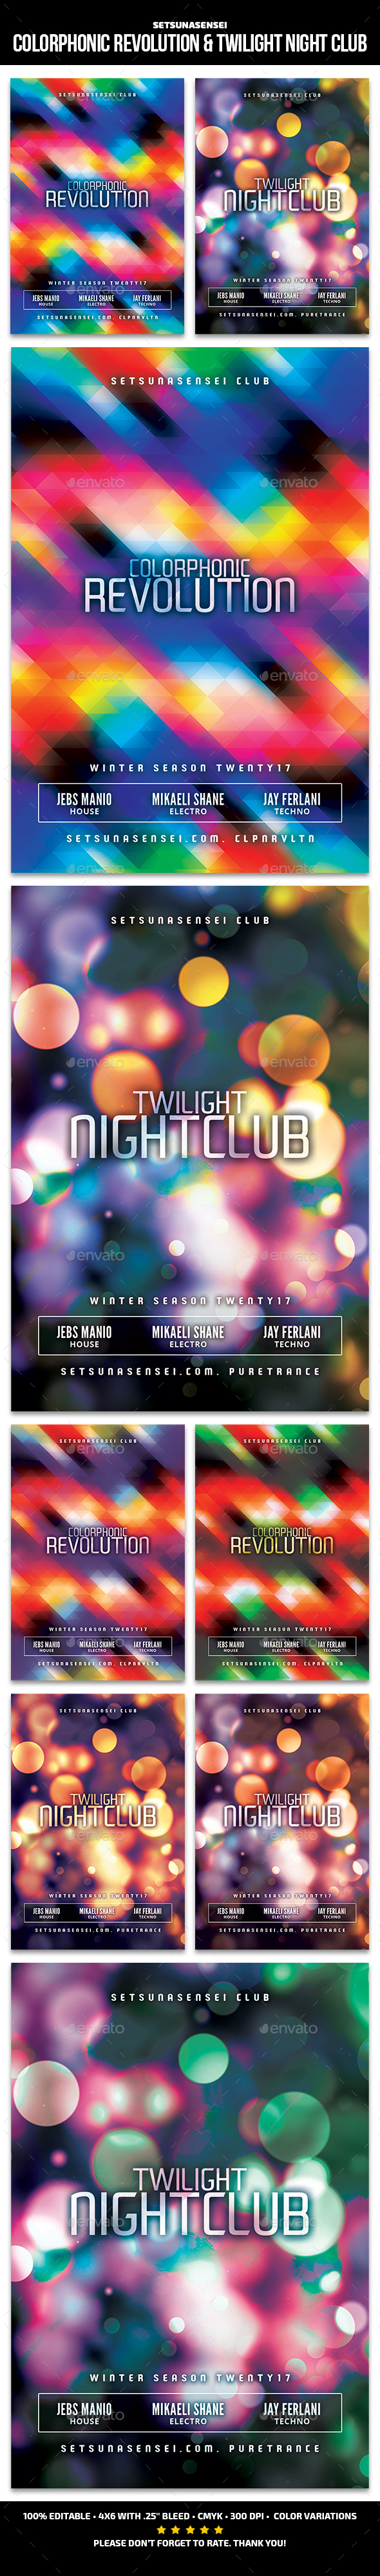 Colorphonic Revolution & Twilight Night Club Flyer - Clubs & Parties Events